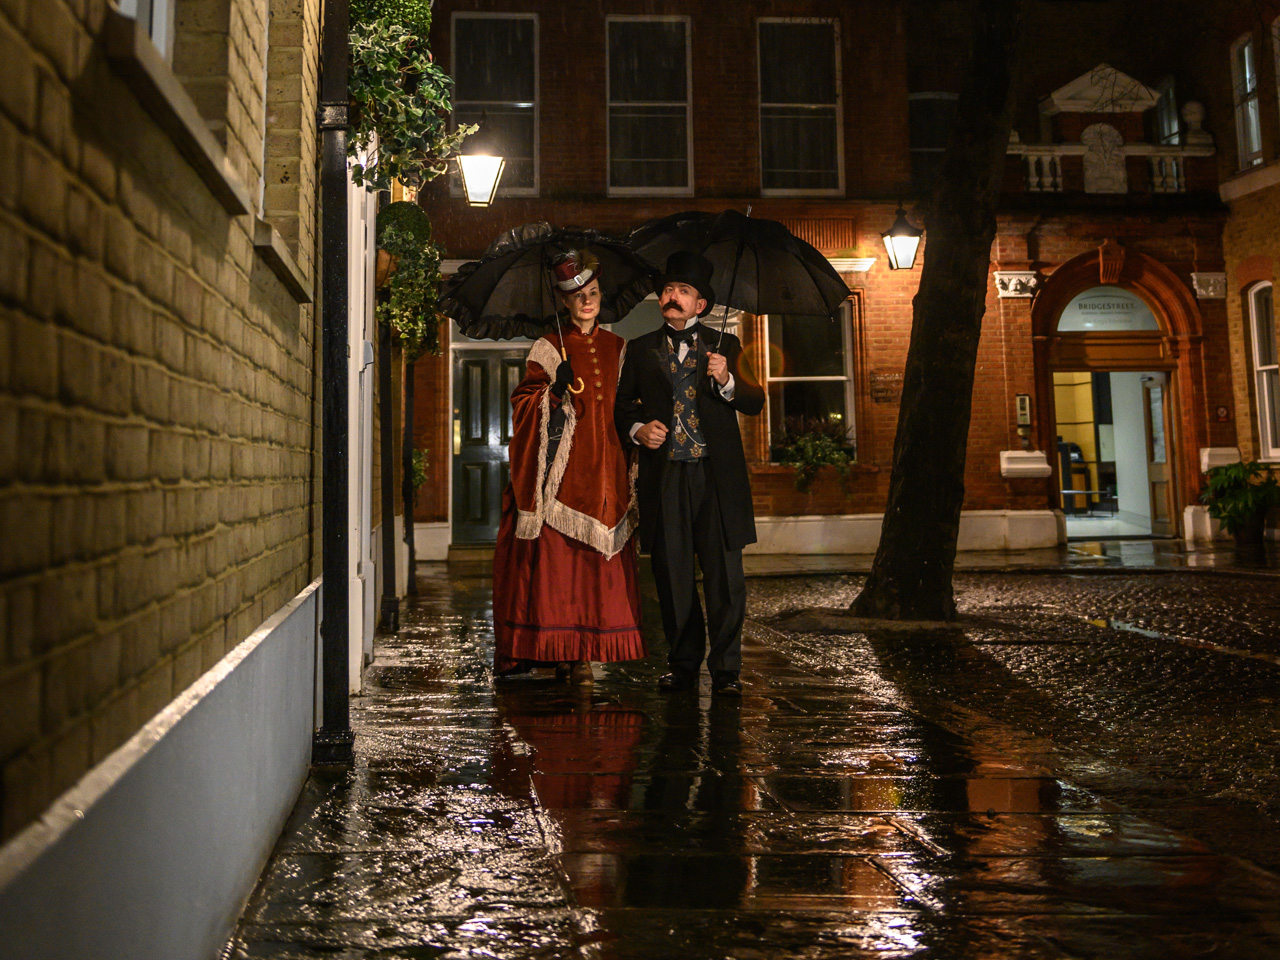 A trip back to the Victorian era as we recreate scenes from the past on the old streets of Norwich